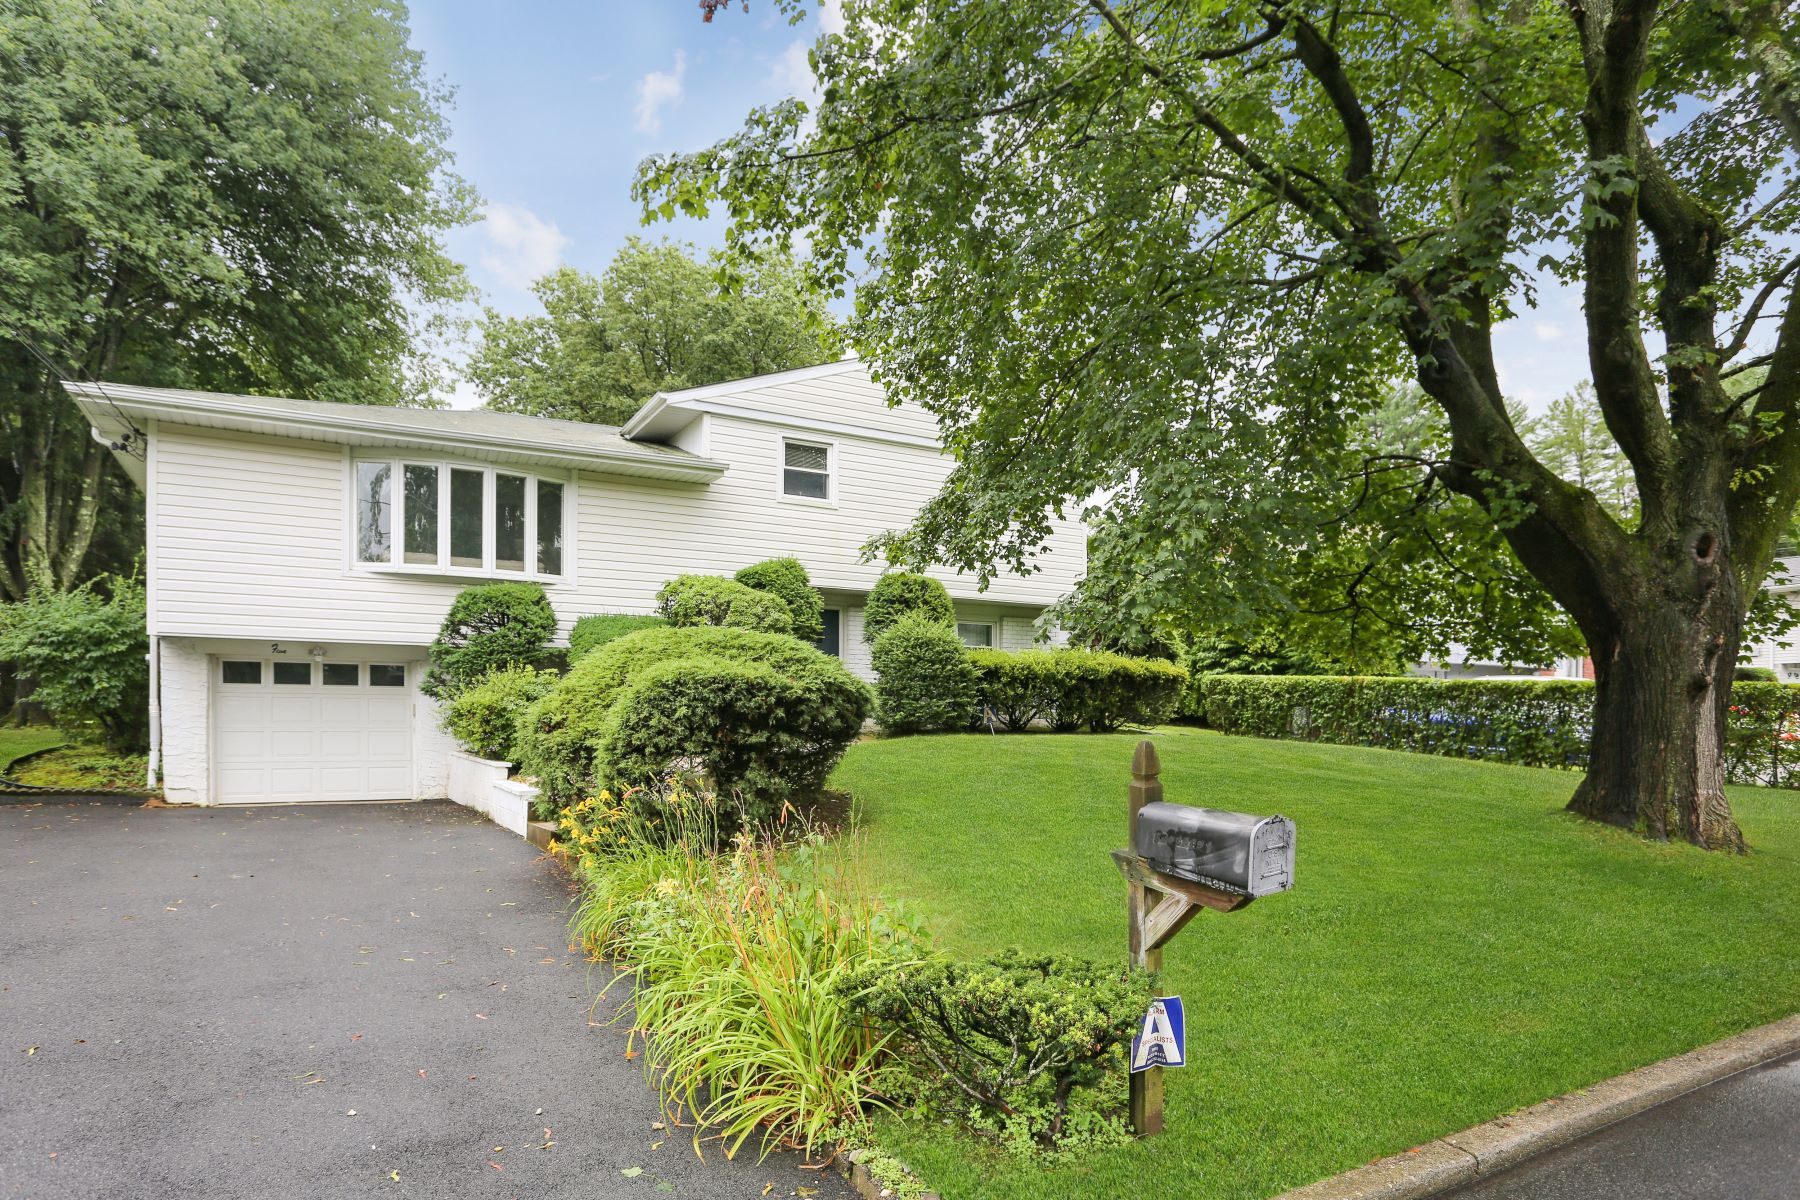 Single Family Homes for Active at Fantastic Opportunity with this Classic Split! 5 Valleyview Road Elmsford, New York 10523 United States